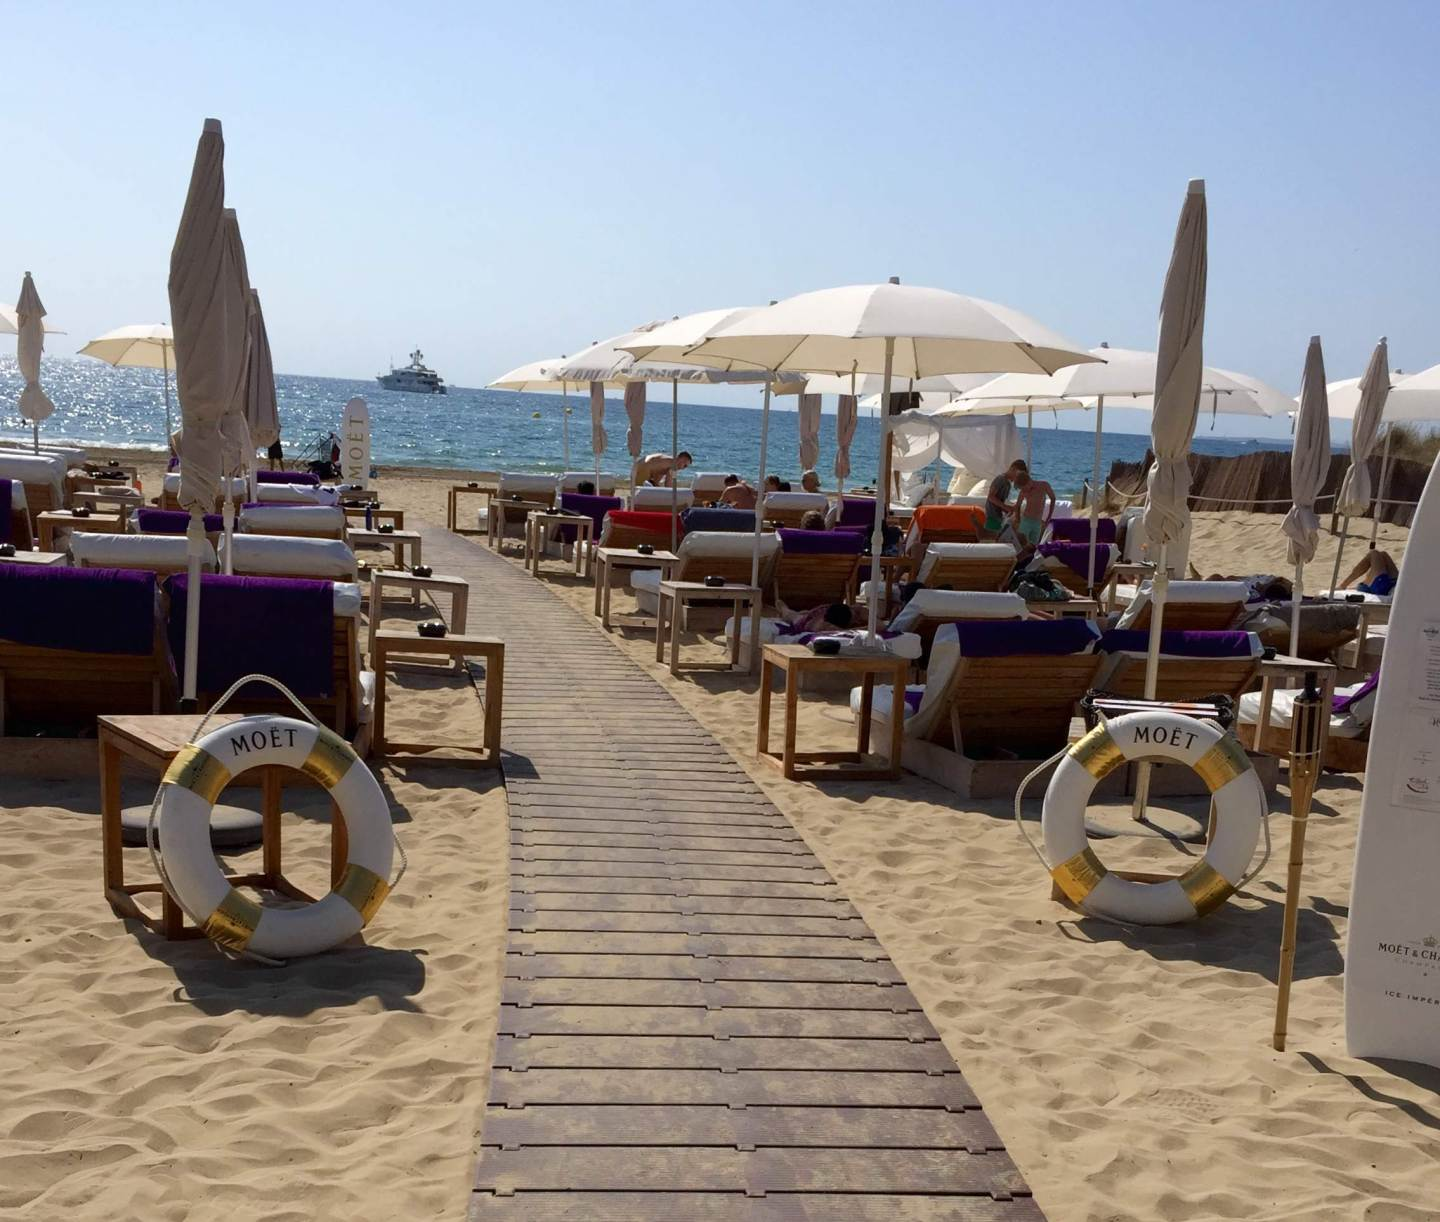 Moet and beach club area, Playa den Bossa